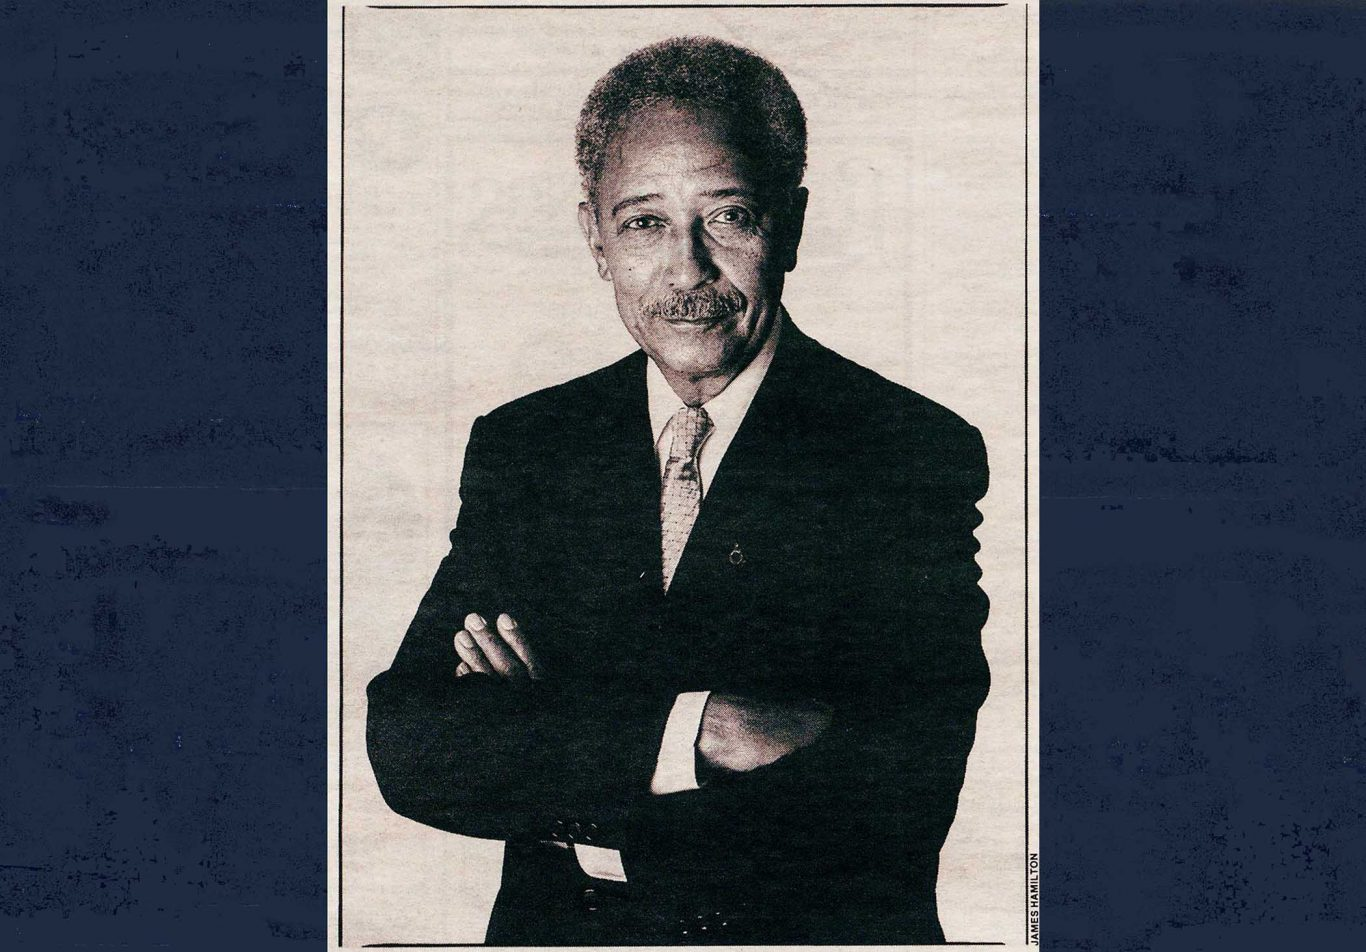 1989 Village Voice endorsement of David Dinkins for NYC mayor